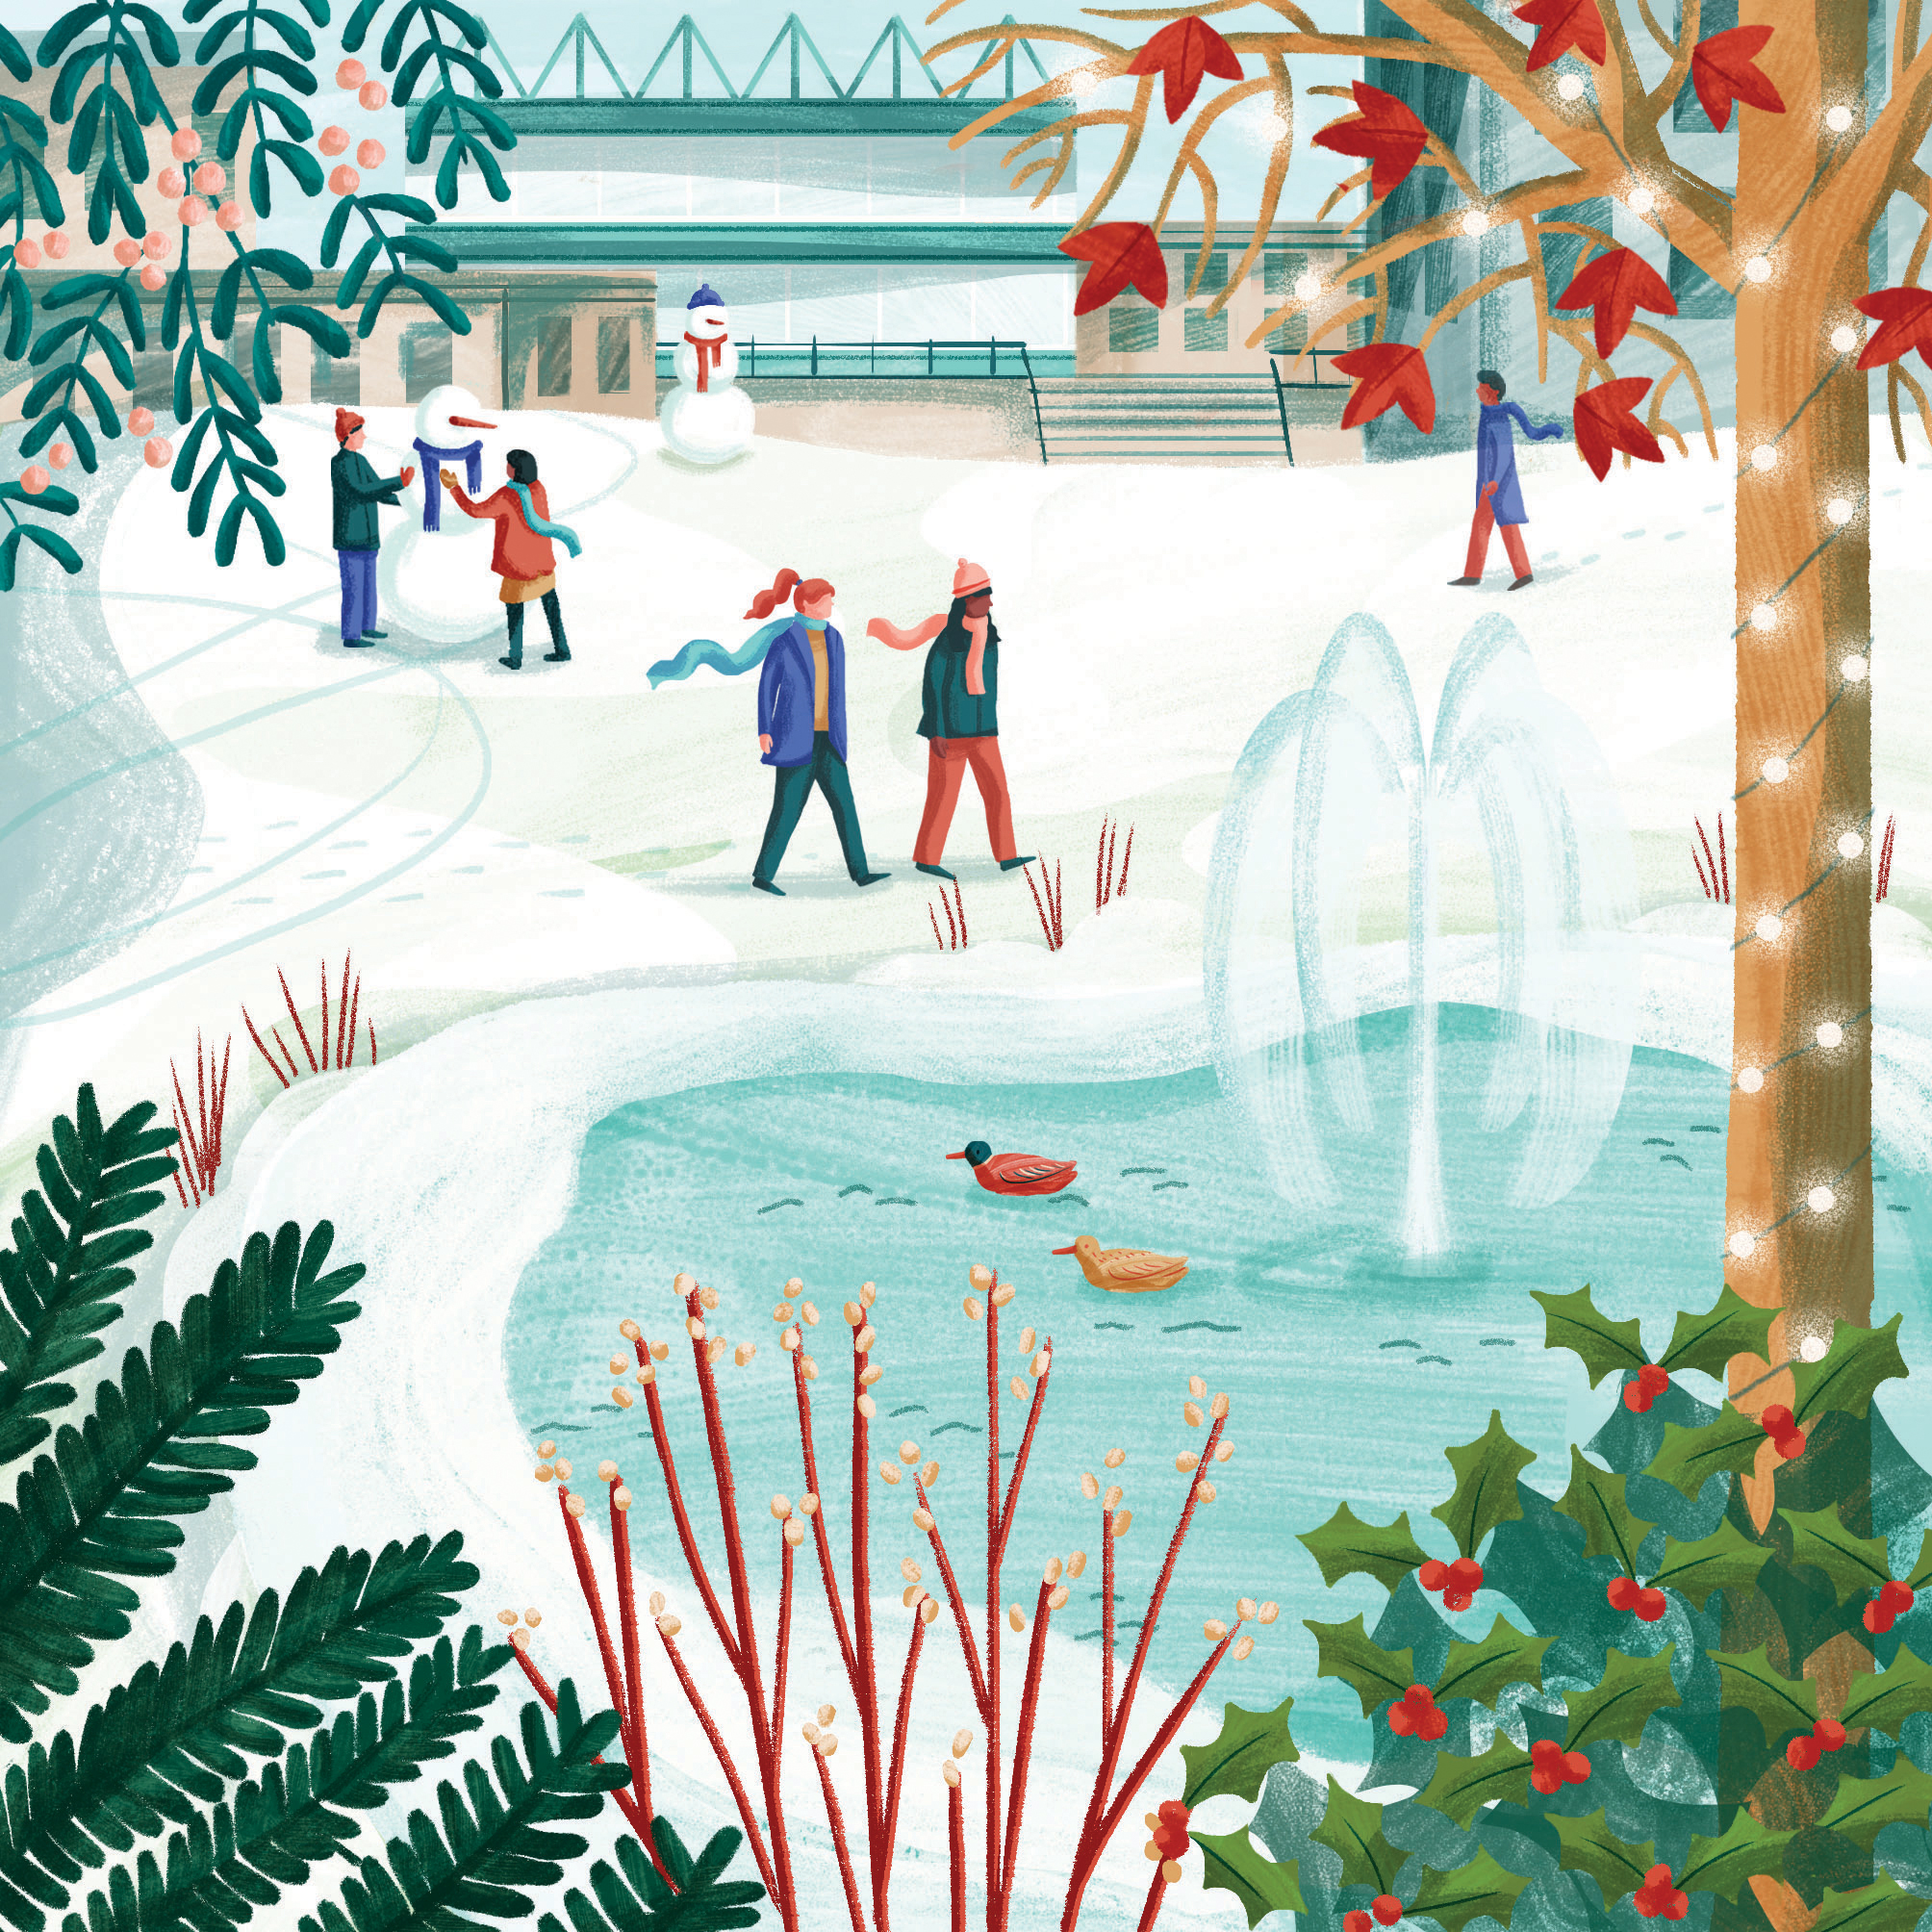 Christmas card design 2019 - An illustration of the University of Bath lake in Winter by Brittany Molineux